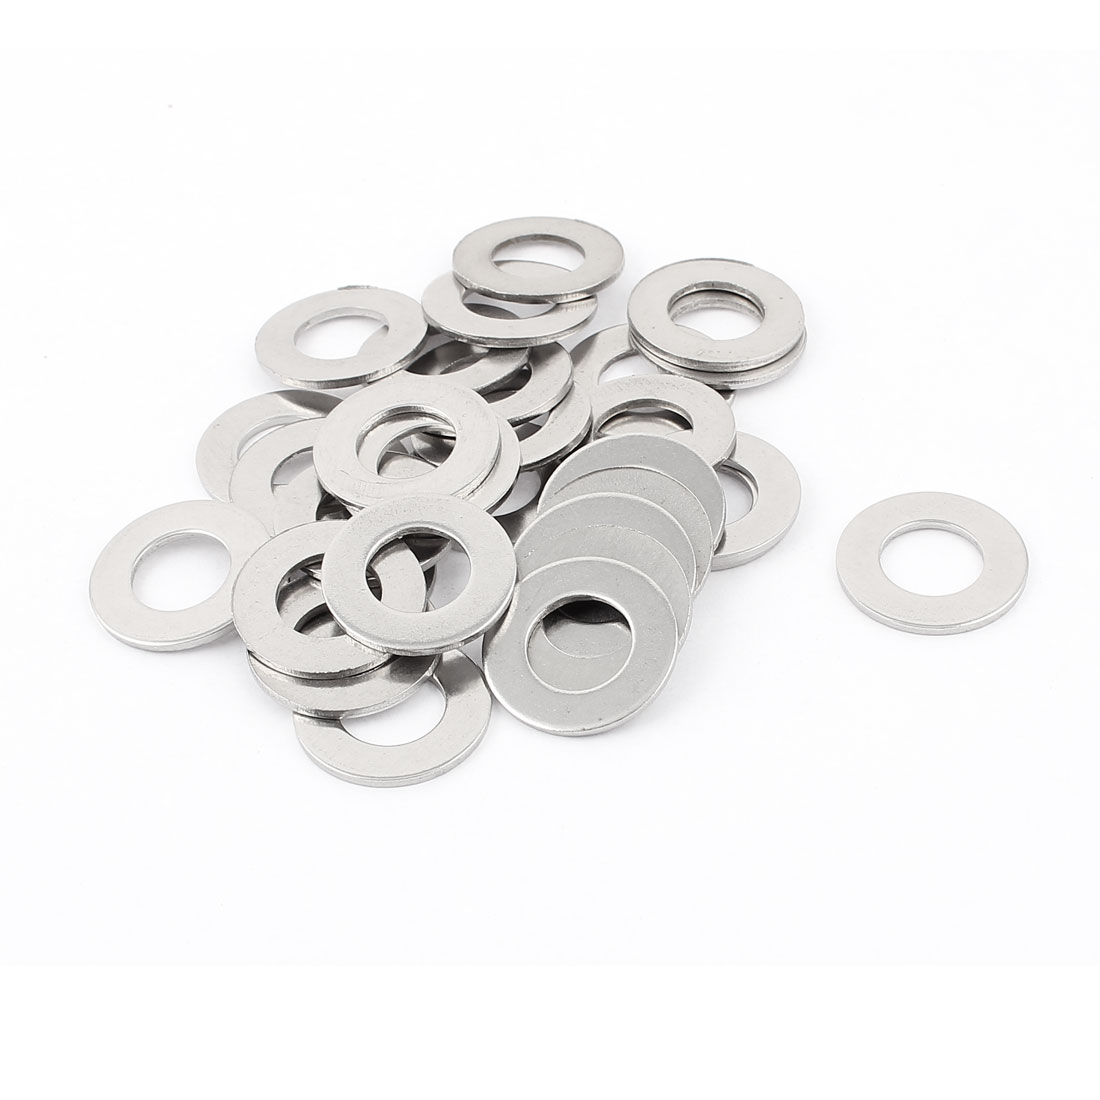 30pcs Stainless Steel M14 Round Flat Washer Spacers for Bolt Screw